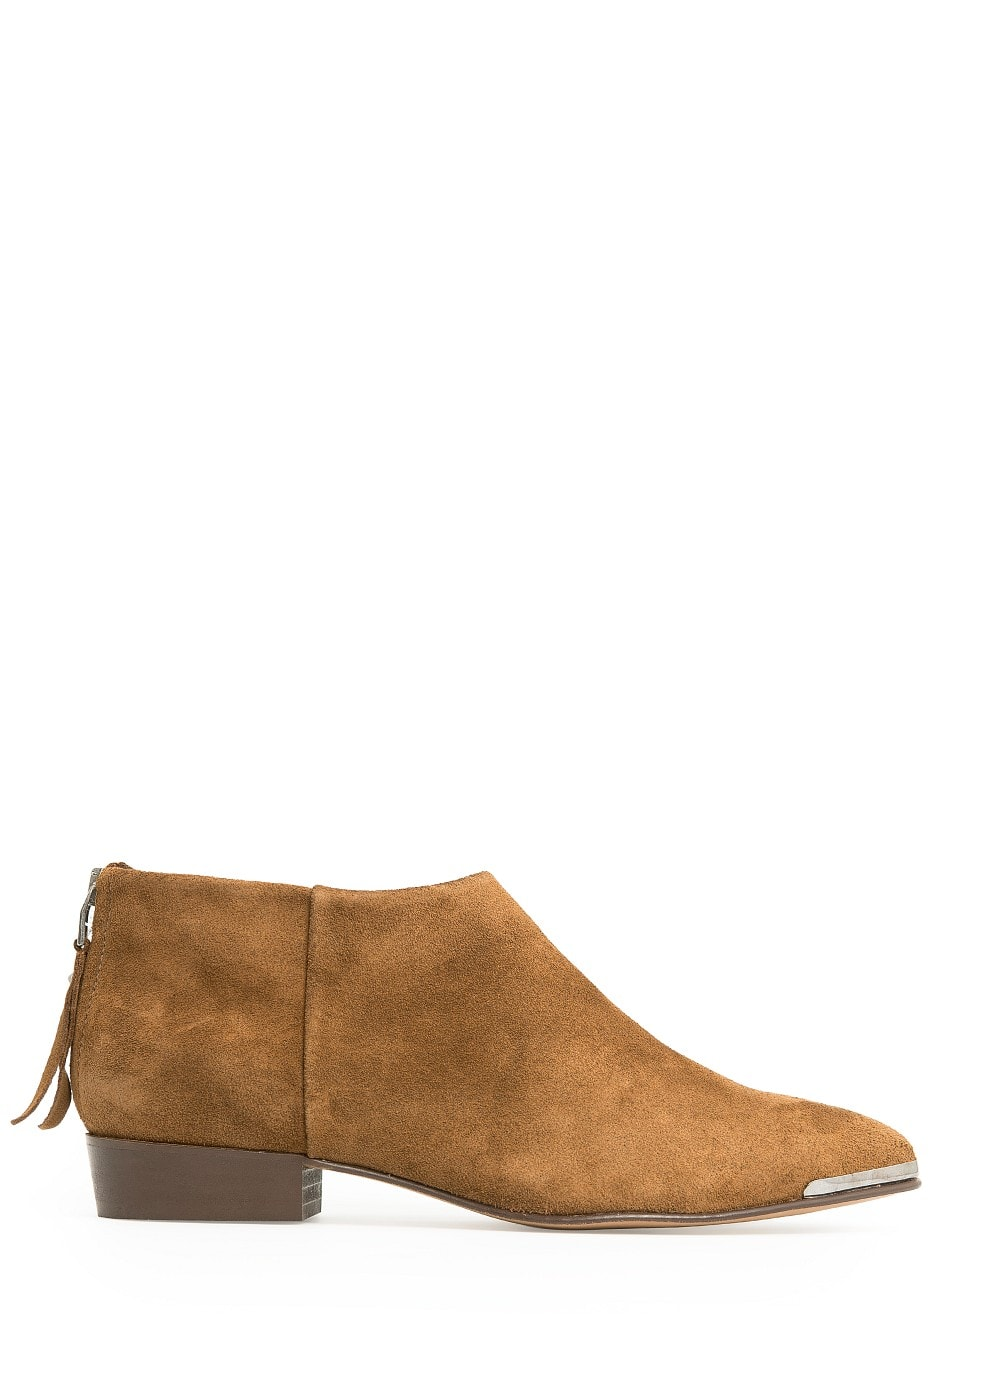 Metal detail suede ankle boots | MANGO